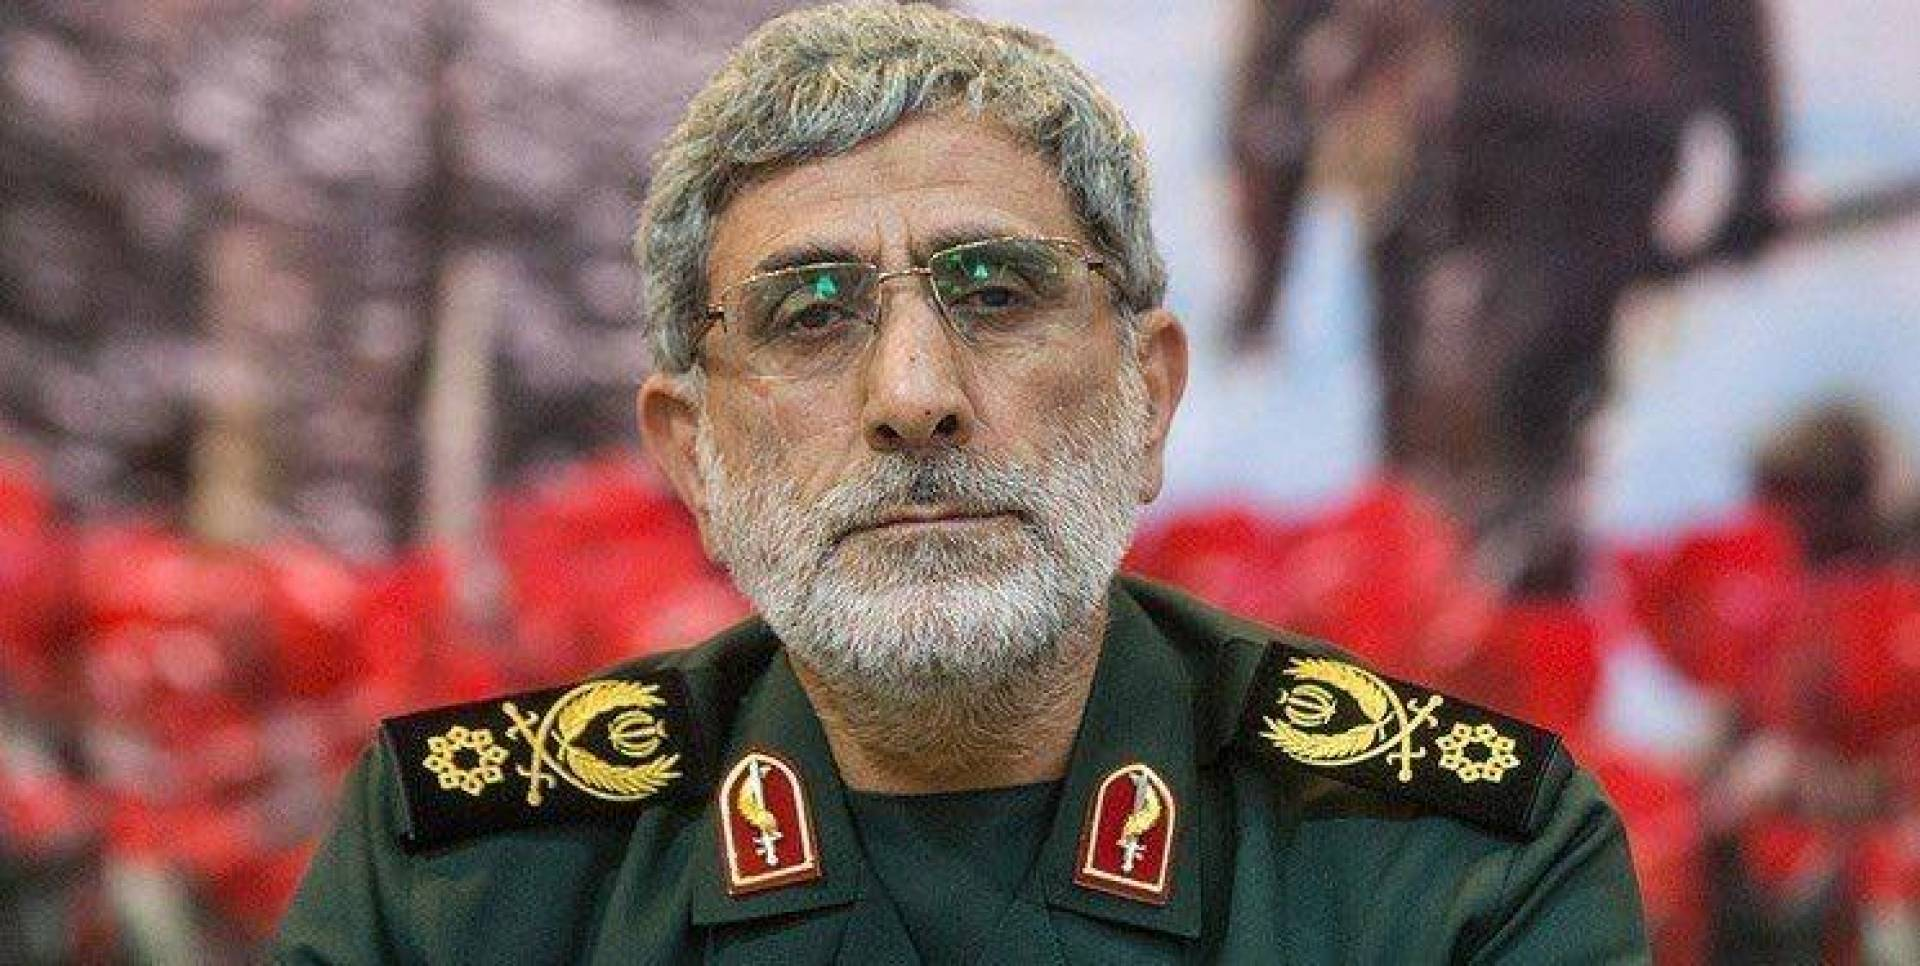 Iran acknowledges Qaani's visit to Iraq and reveals letters sent from there